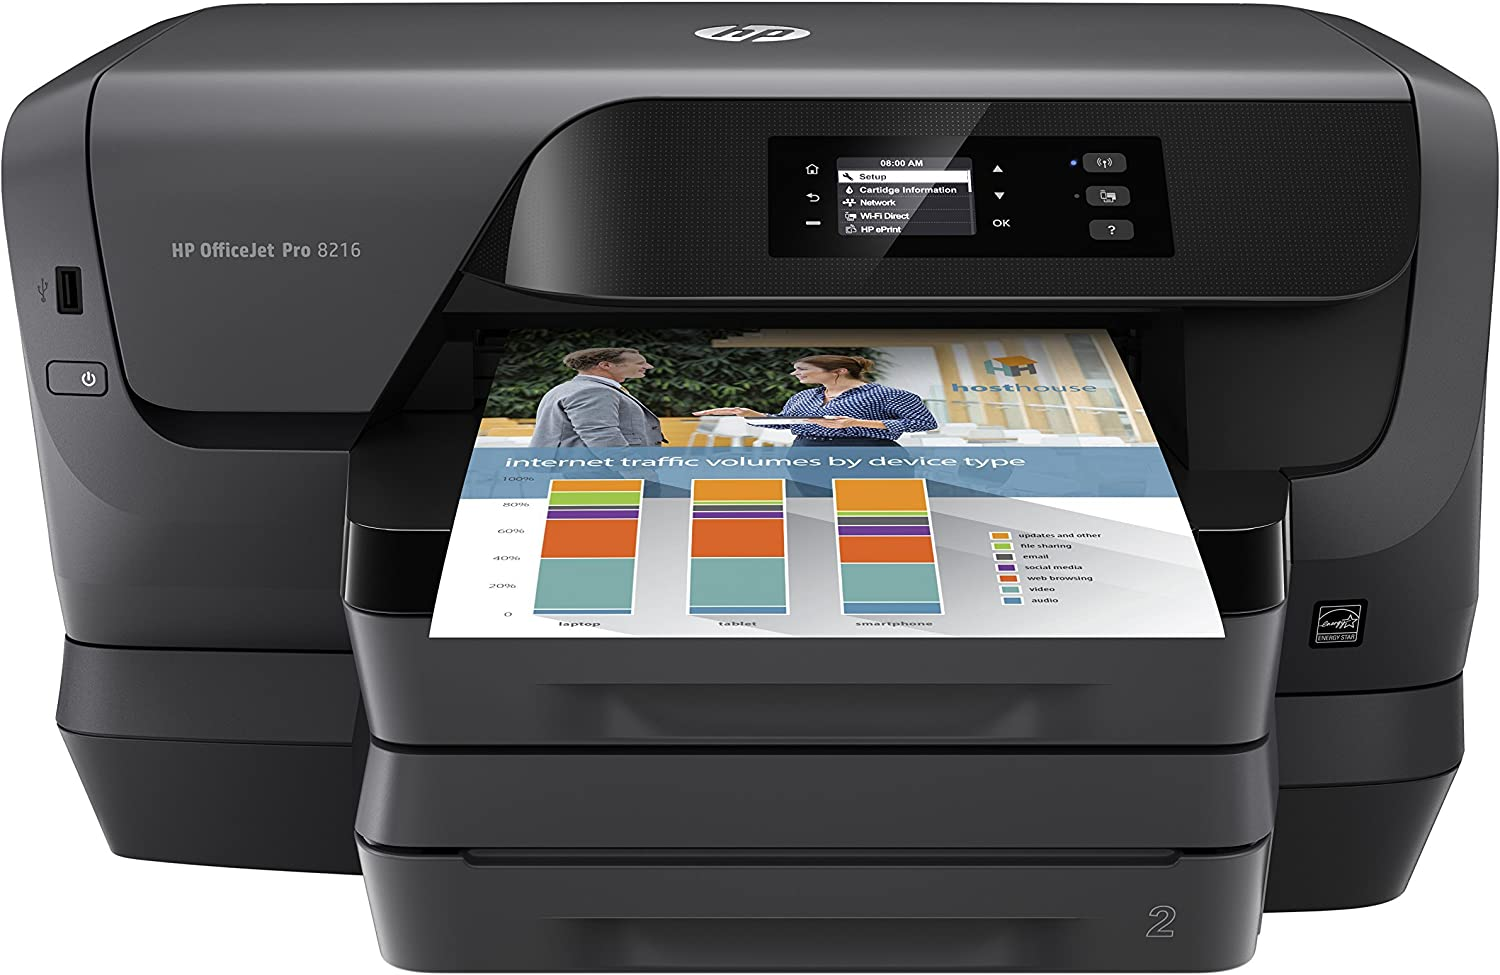 HP OfficeJet Pro 8216 Wireless Professional-Quality Color Printer with Mobile Printing, Instant Ink ready (Renewed)